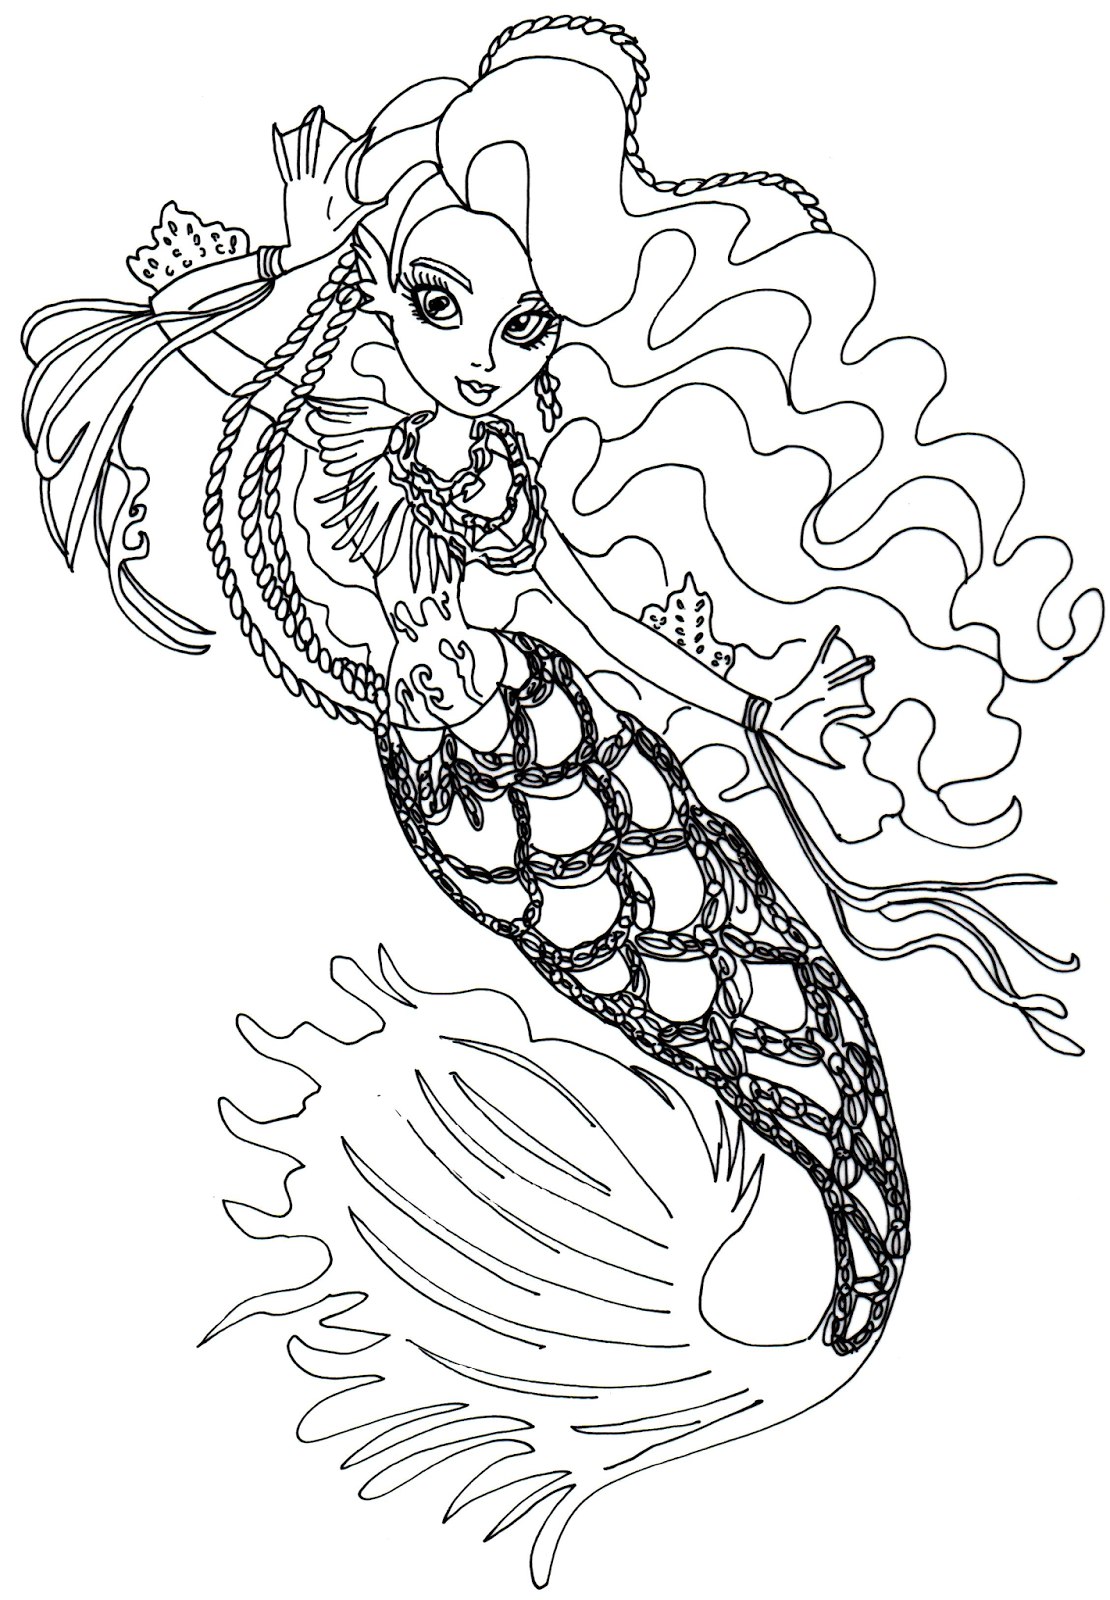 Free printable monster high coloring page for Sirena Von Boo in her ...: free-monster-high-coloring-sheets.blogspot.com